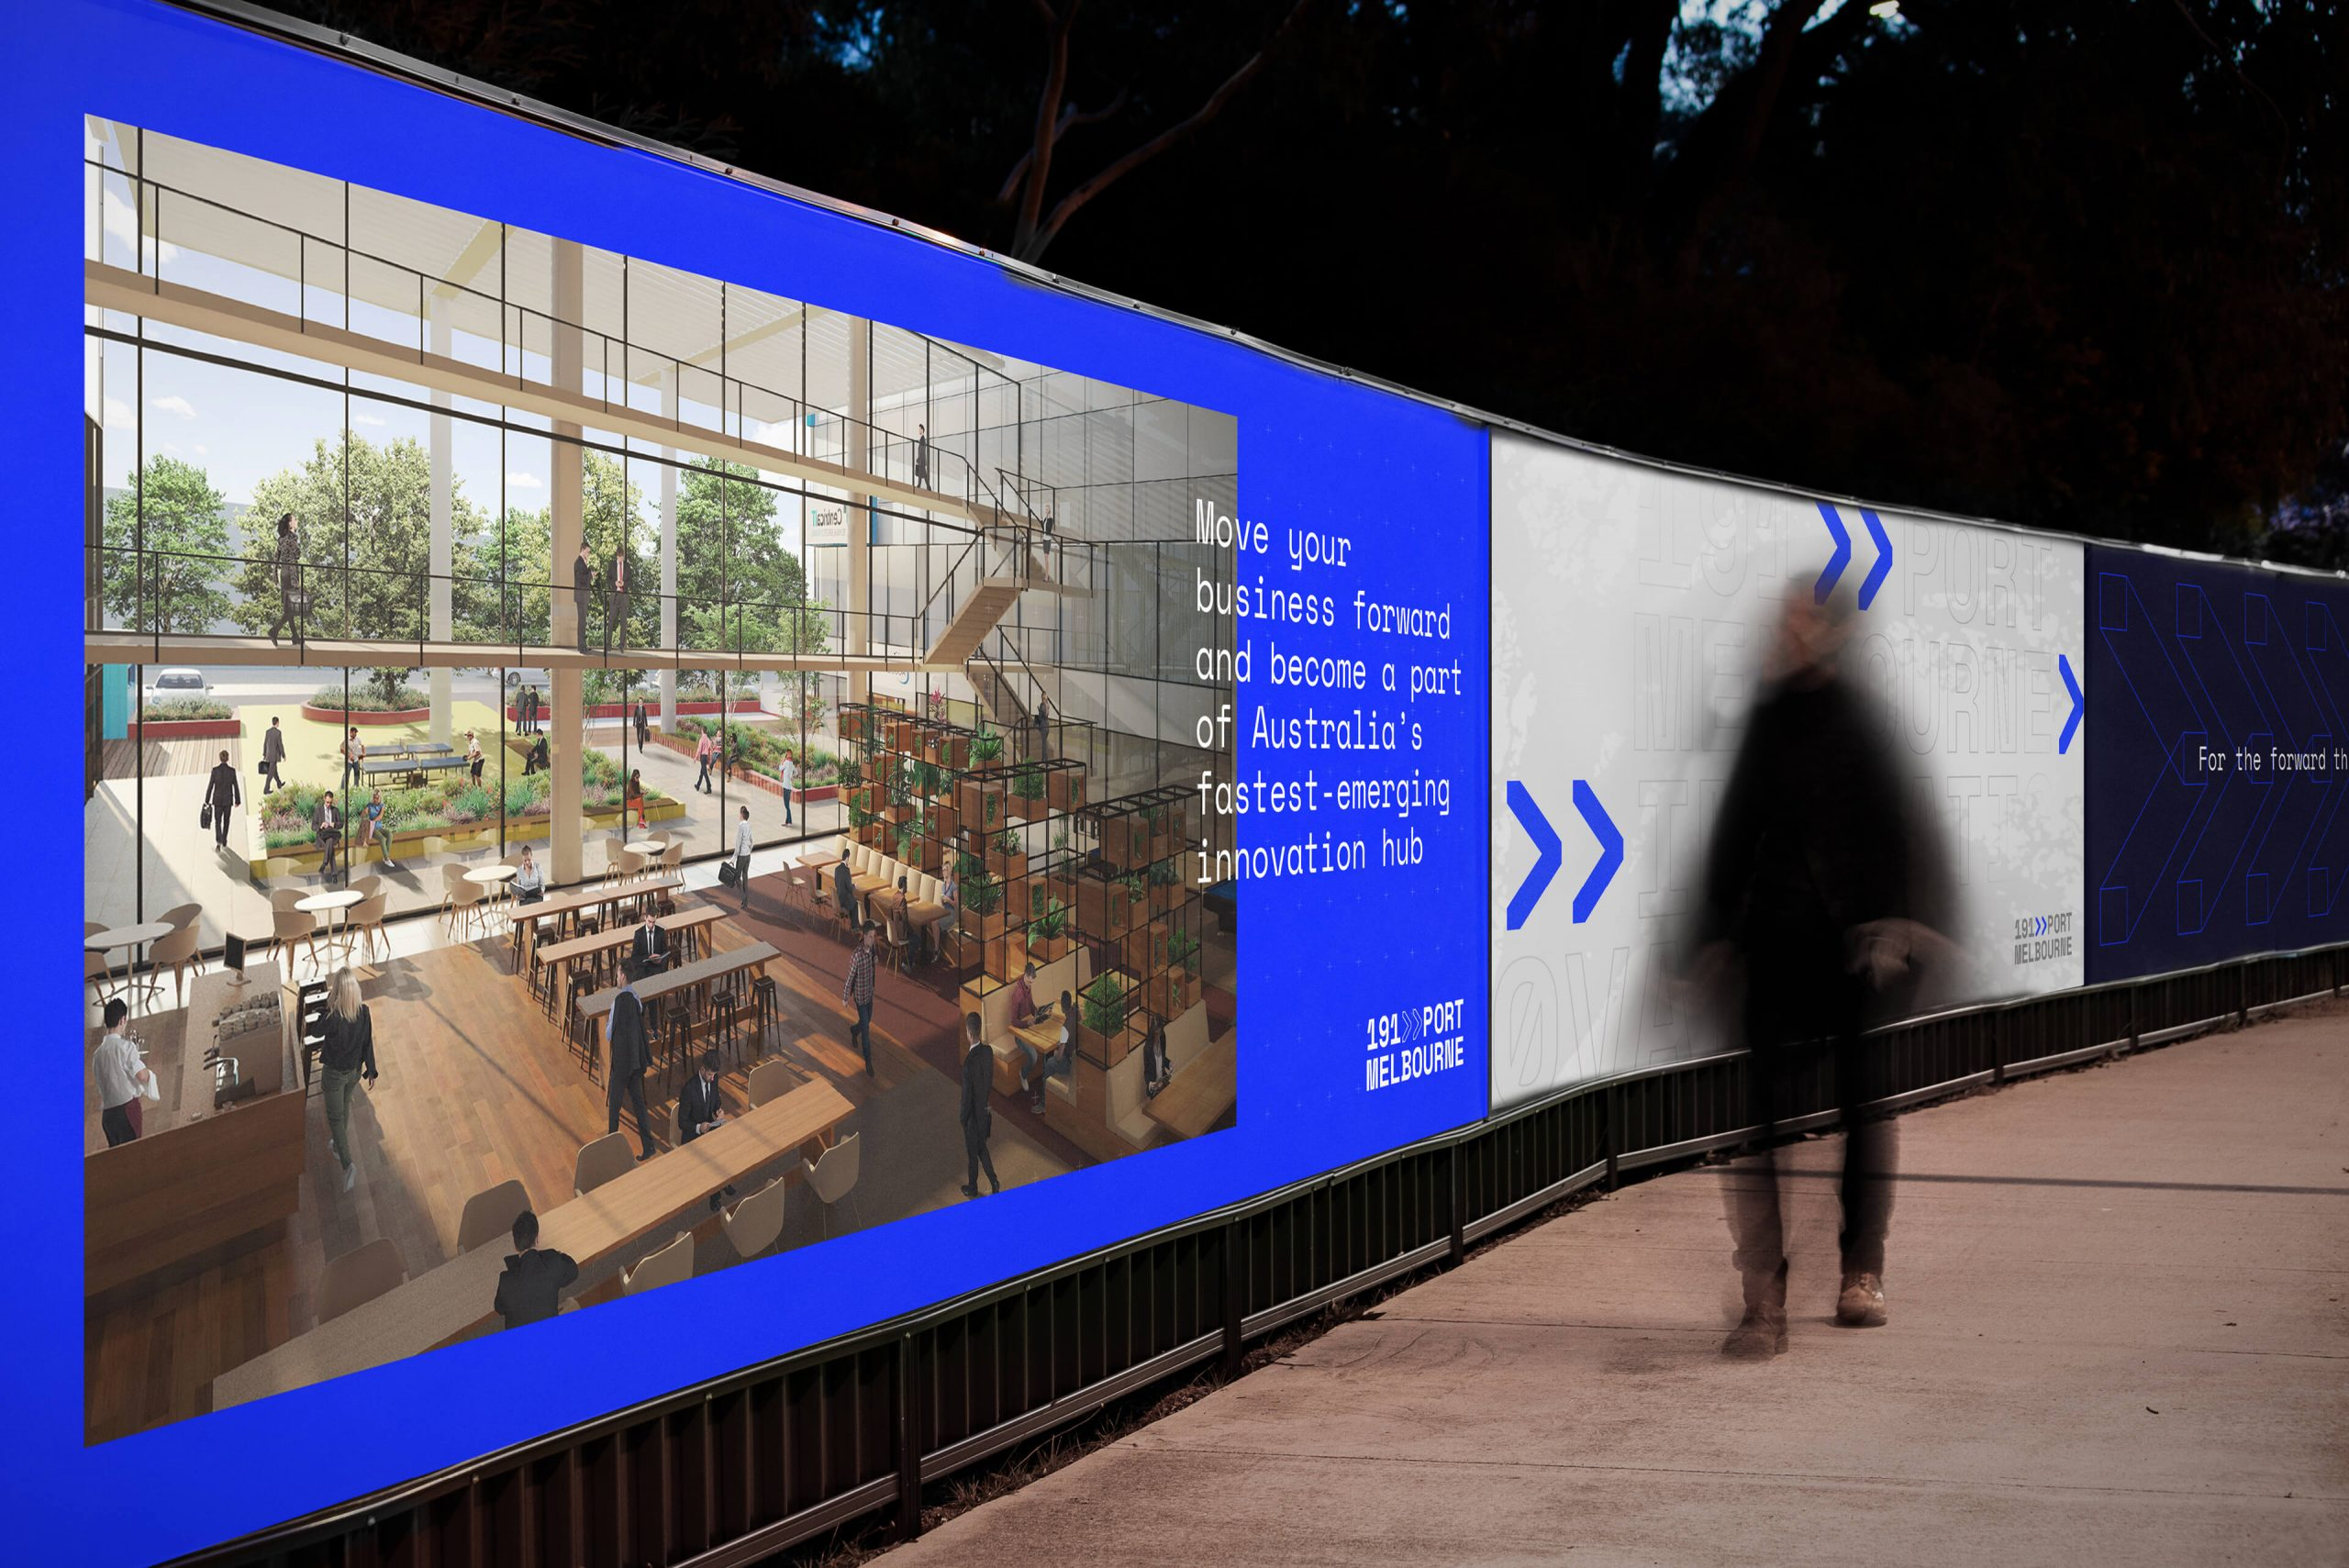 191 Port Melbourne - Property Brand Identity - Hoarding Design & Communication